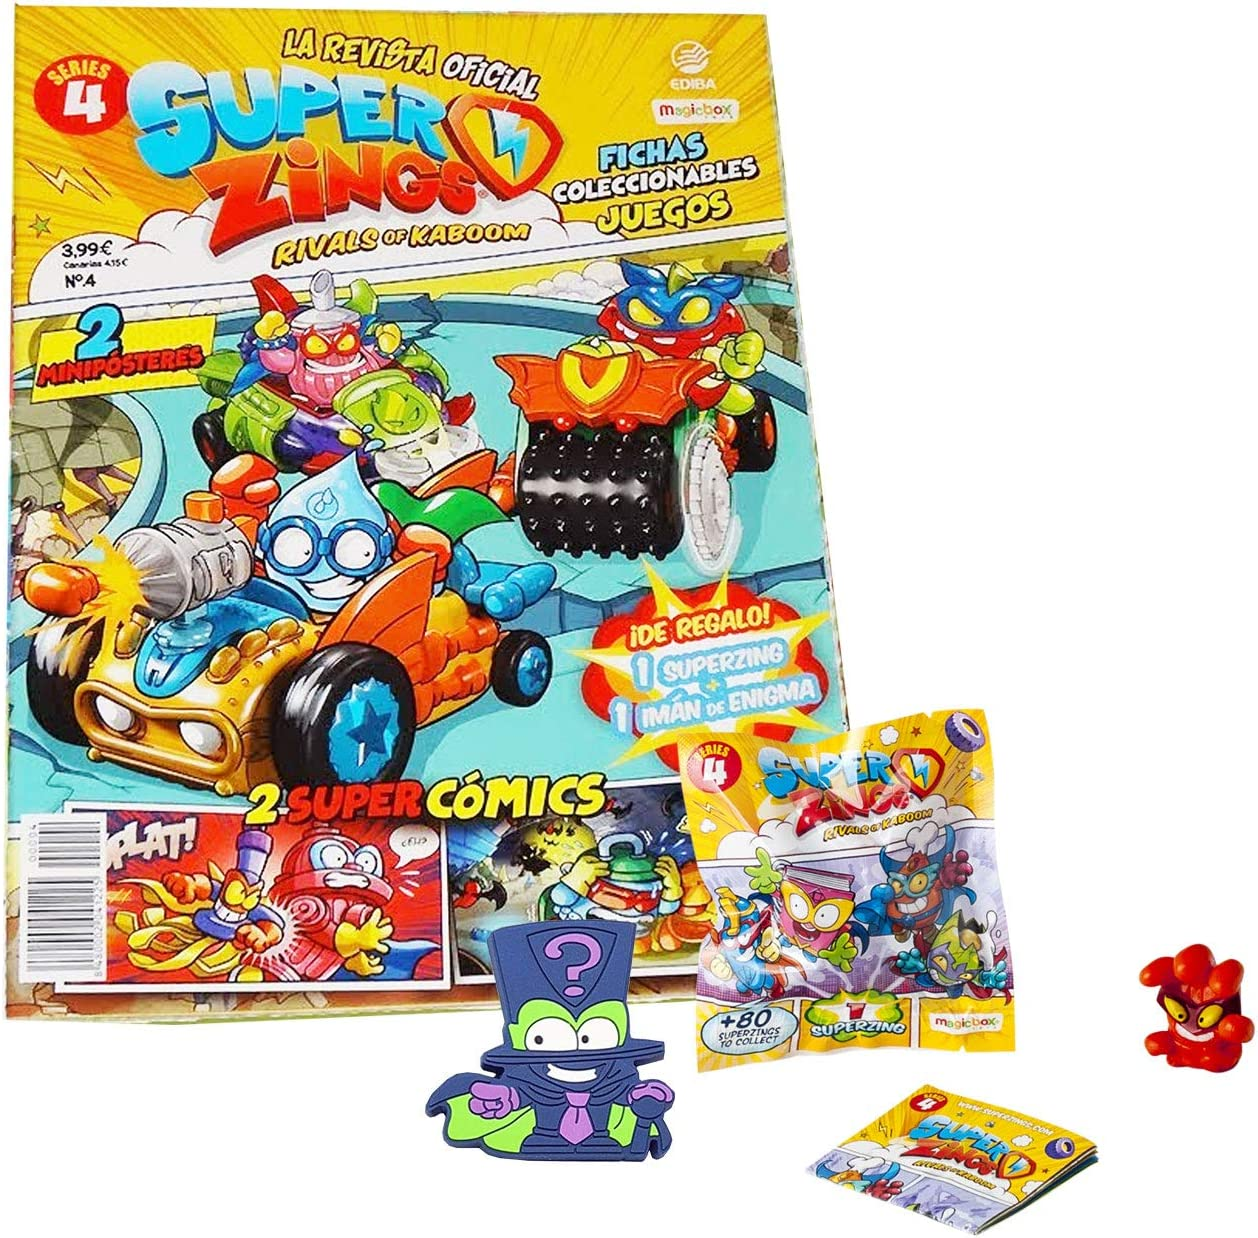 Rivals of Kaboom Superzings Serie 4 Superzings Revista Oficial Pack Exclusivo: Amazon.es: Juguetes y juegos